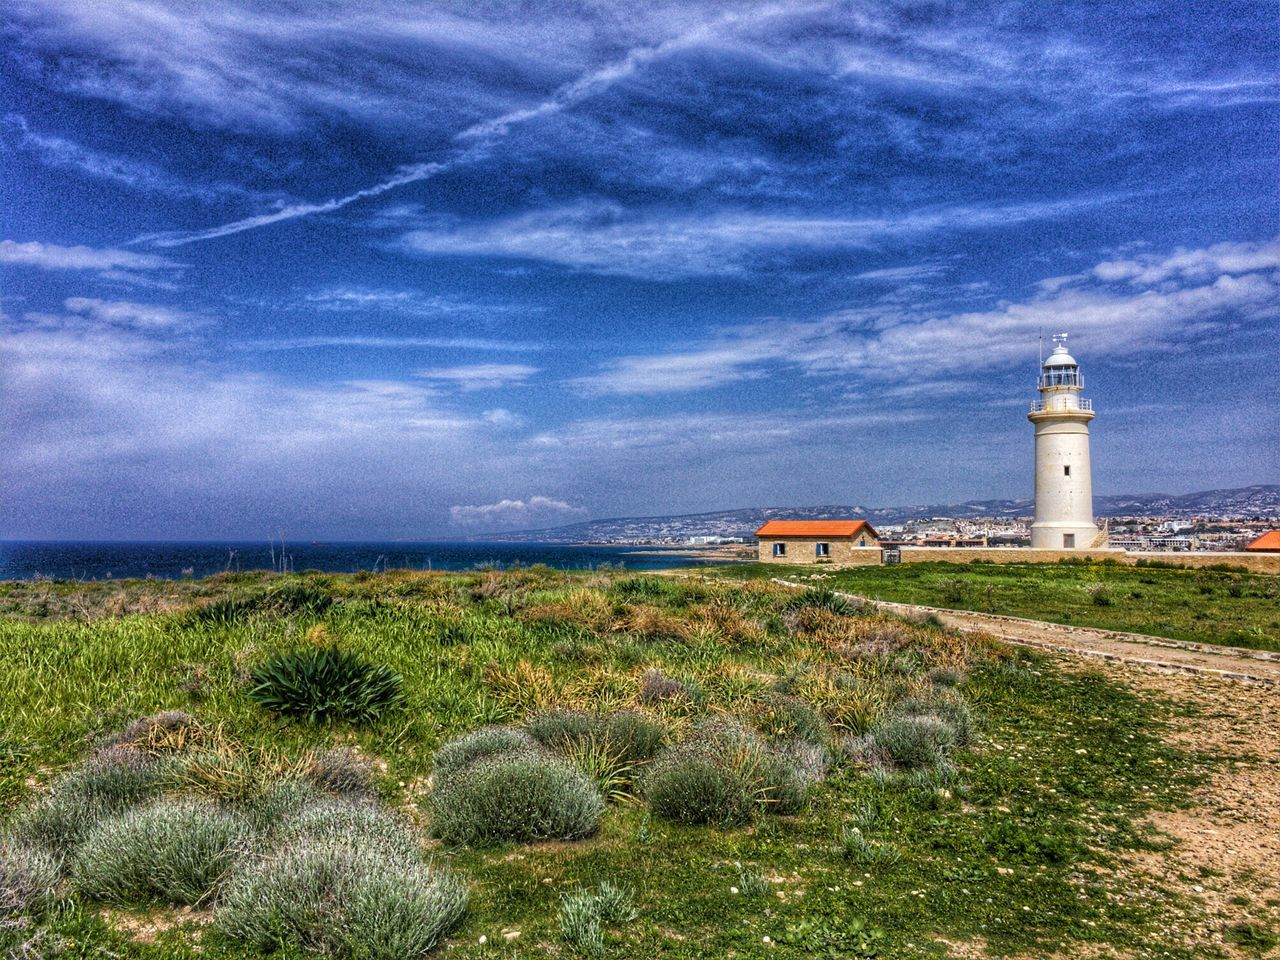 lighthouse, architecture, built structure, building exterior, sea, cloud - sky, grass, sky, guidance, day, protection, nature, horizon over water, scenics, beach, tranquility, no people, outdoors, beauty in nature, water